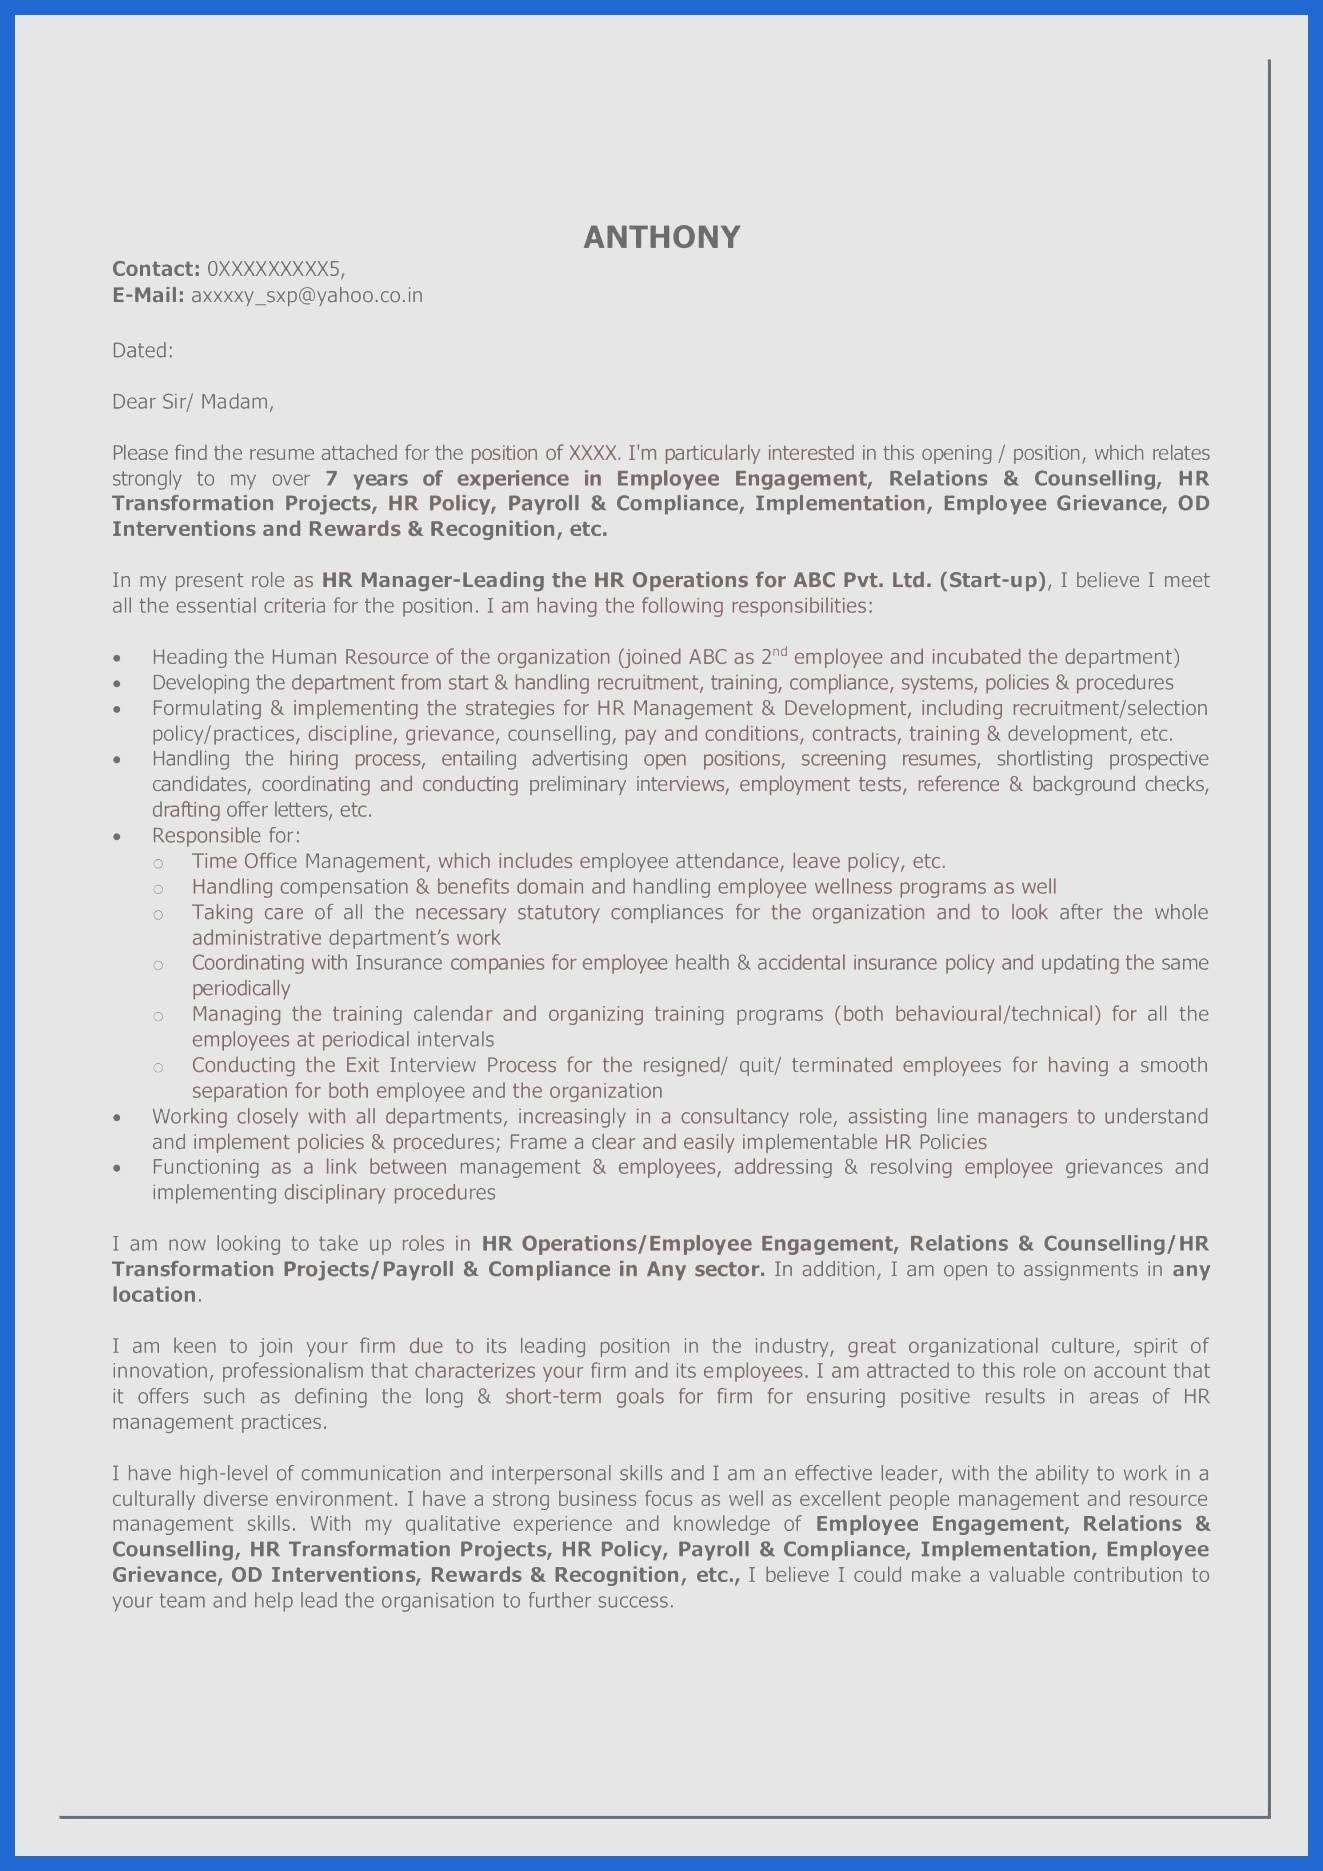 Business Reference Template Word Awesome Letter Re Mendation Intended For Business Reference Template Word